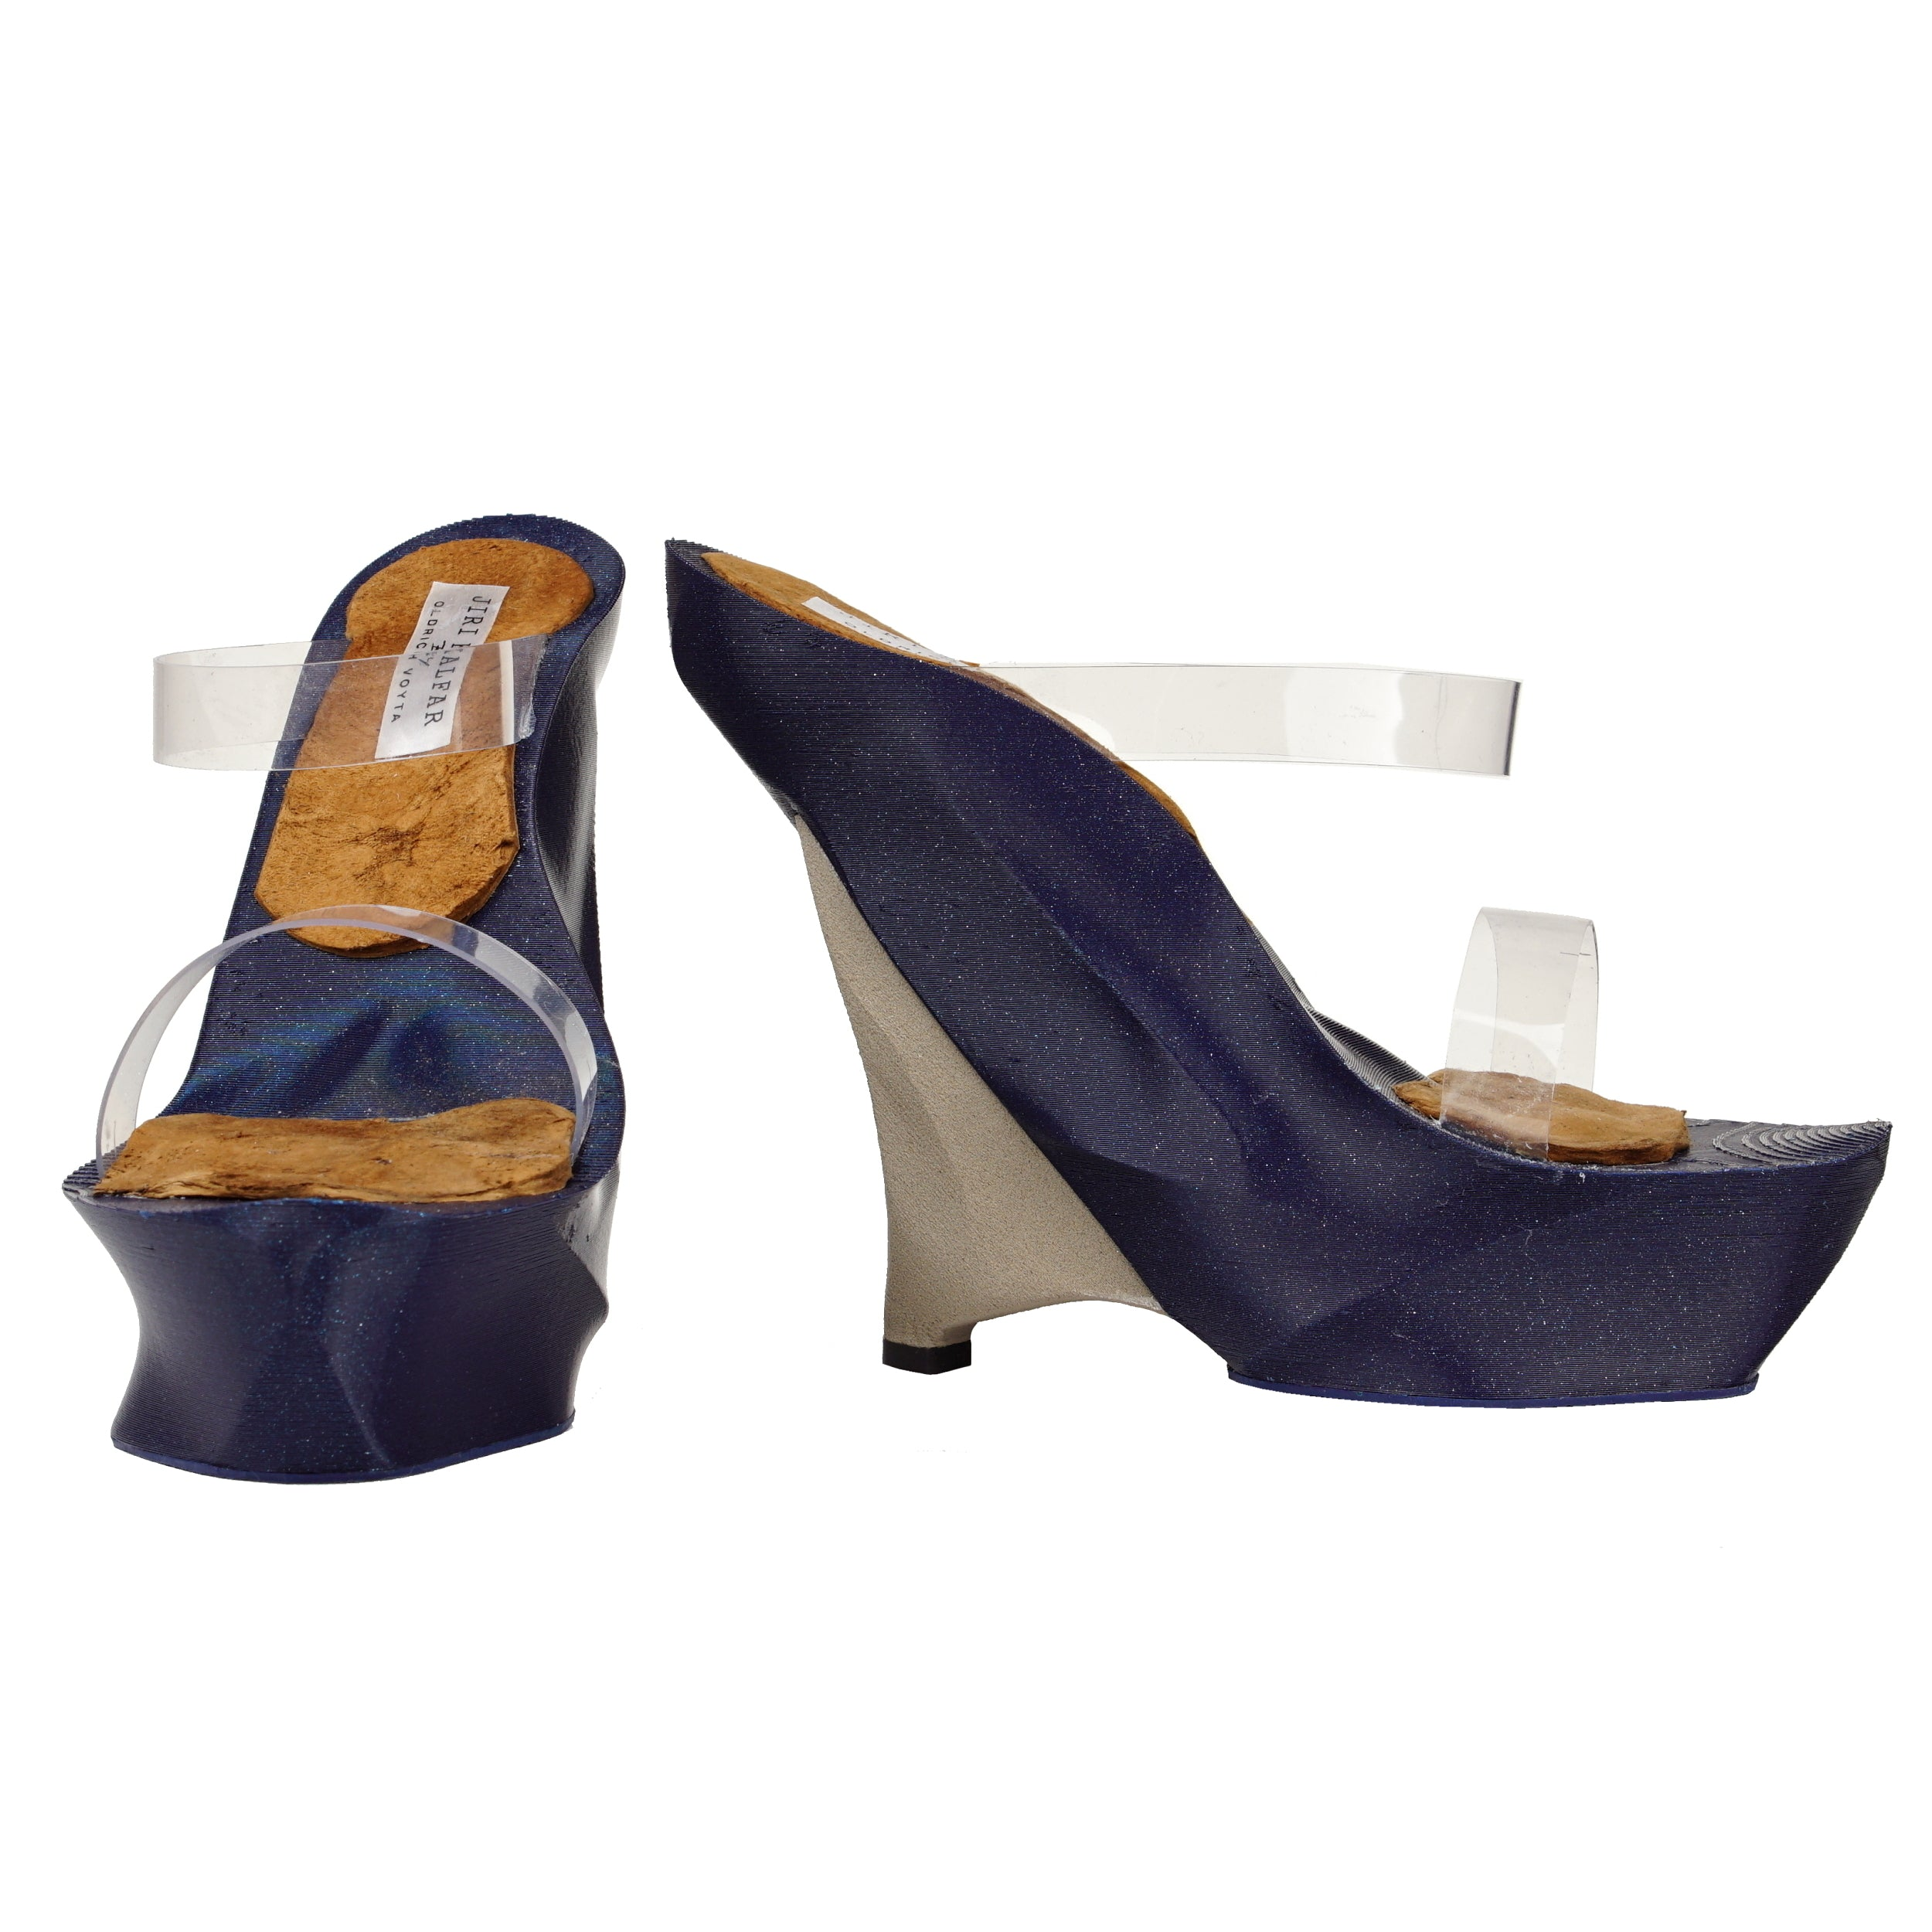 DARK BLUE & CHAMPAGNE 3D PRINT SHOES WITH PVC STRAPS